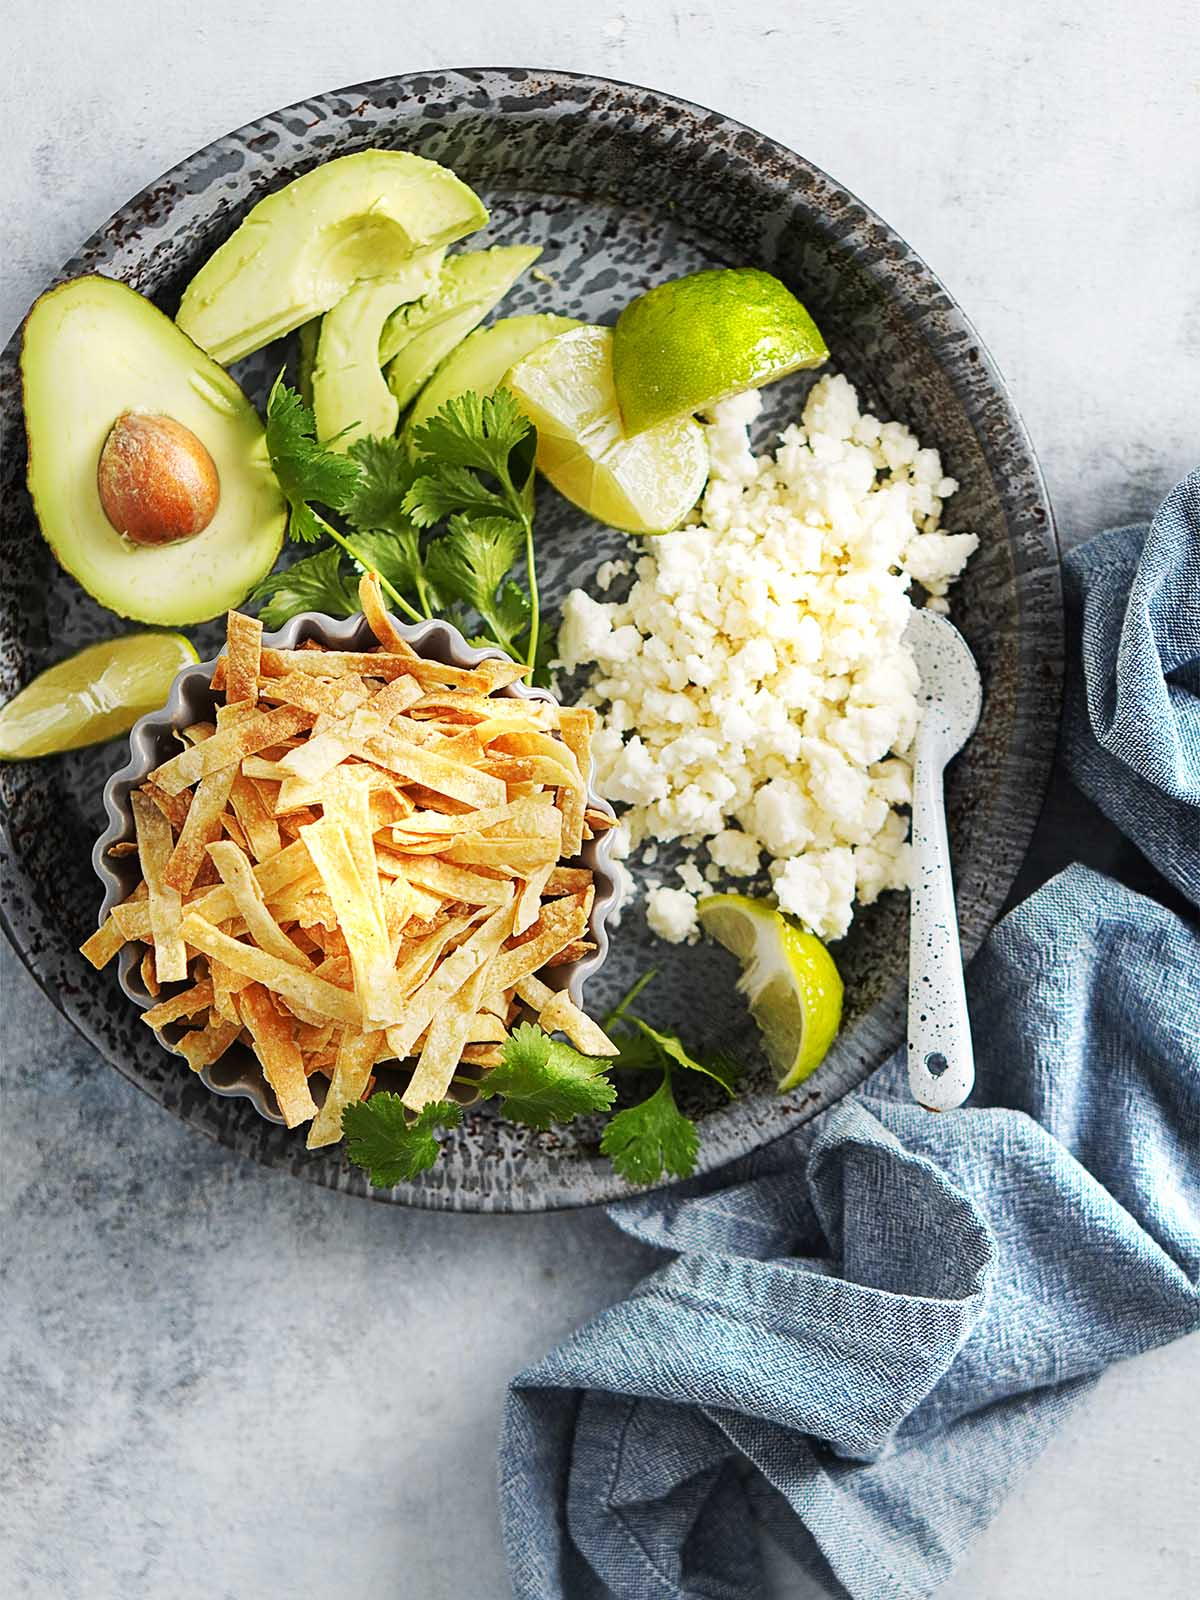 A metal plate with tortilla strips, crumbled cheese, sliced limes and avocado.